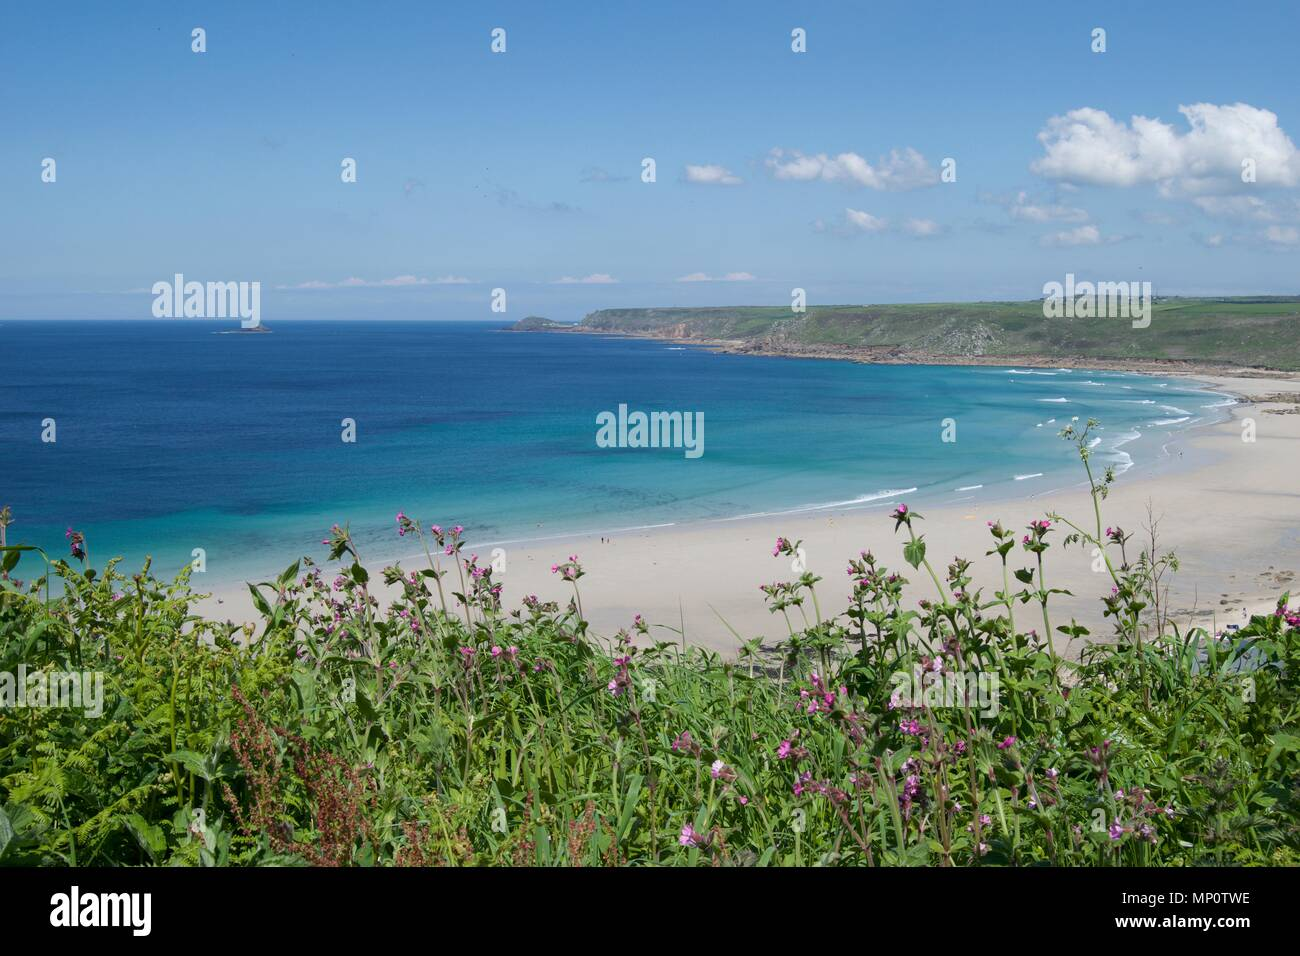 A view over the beautiful white sand beach of Sennen Cove, Cornwall, UK. - Stock Image